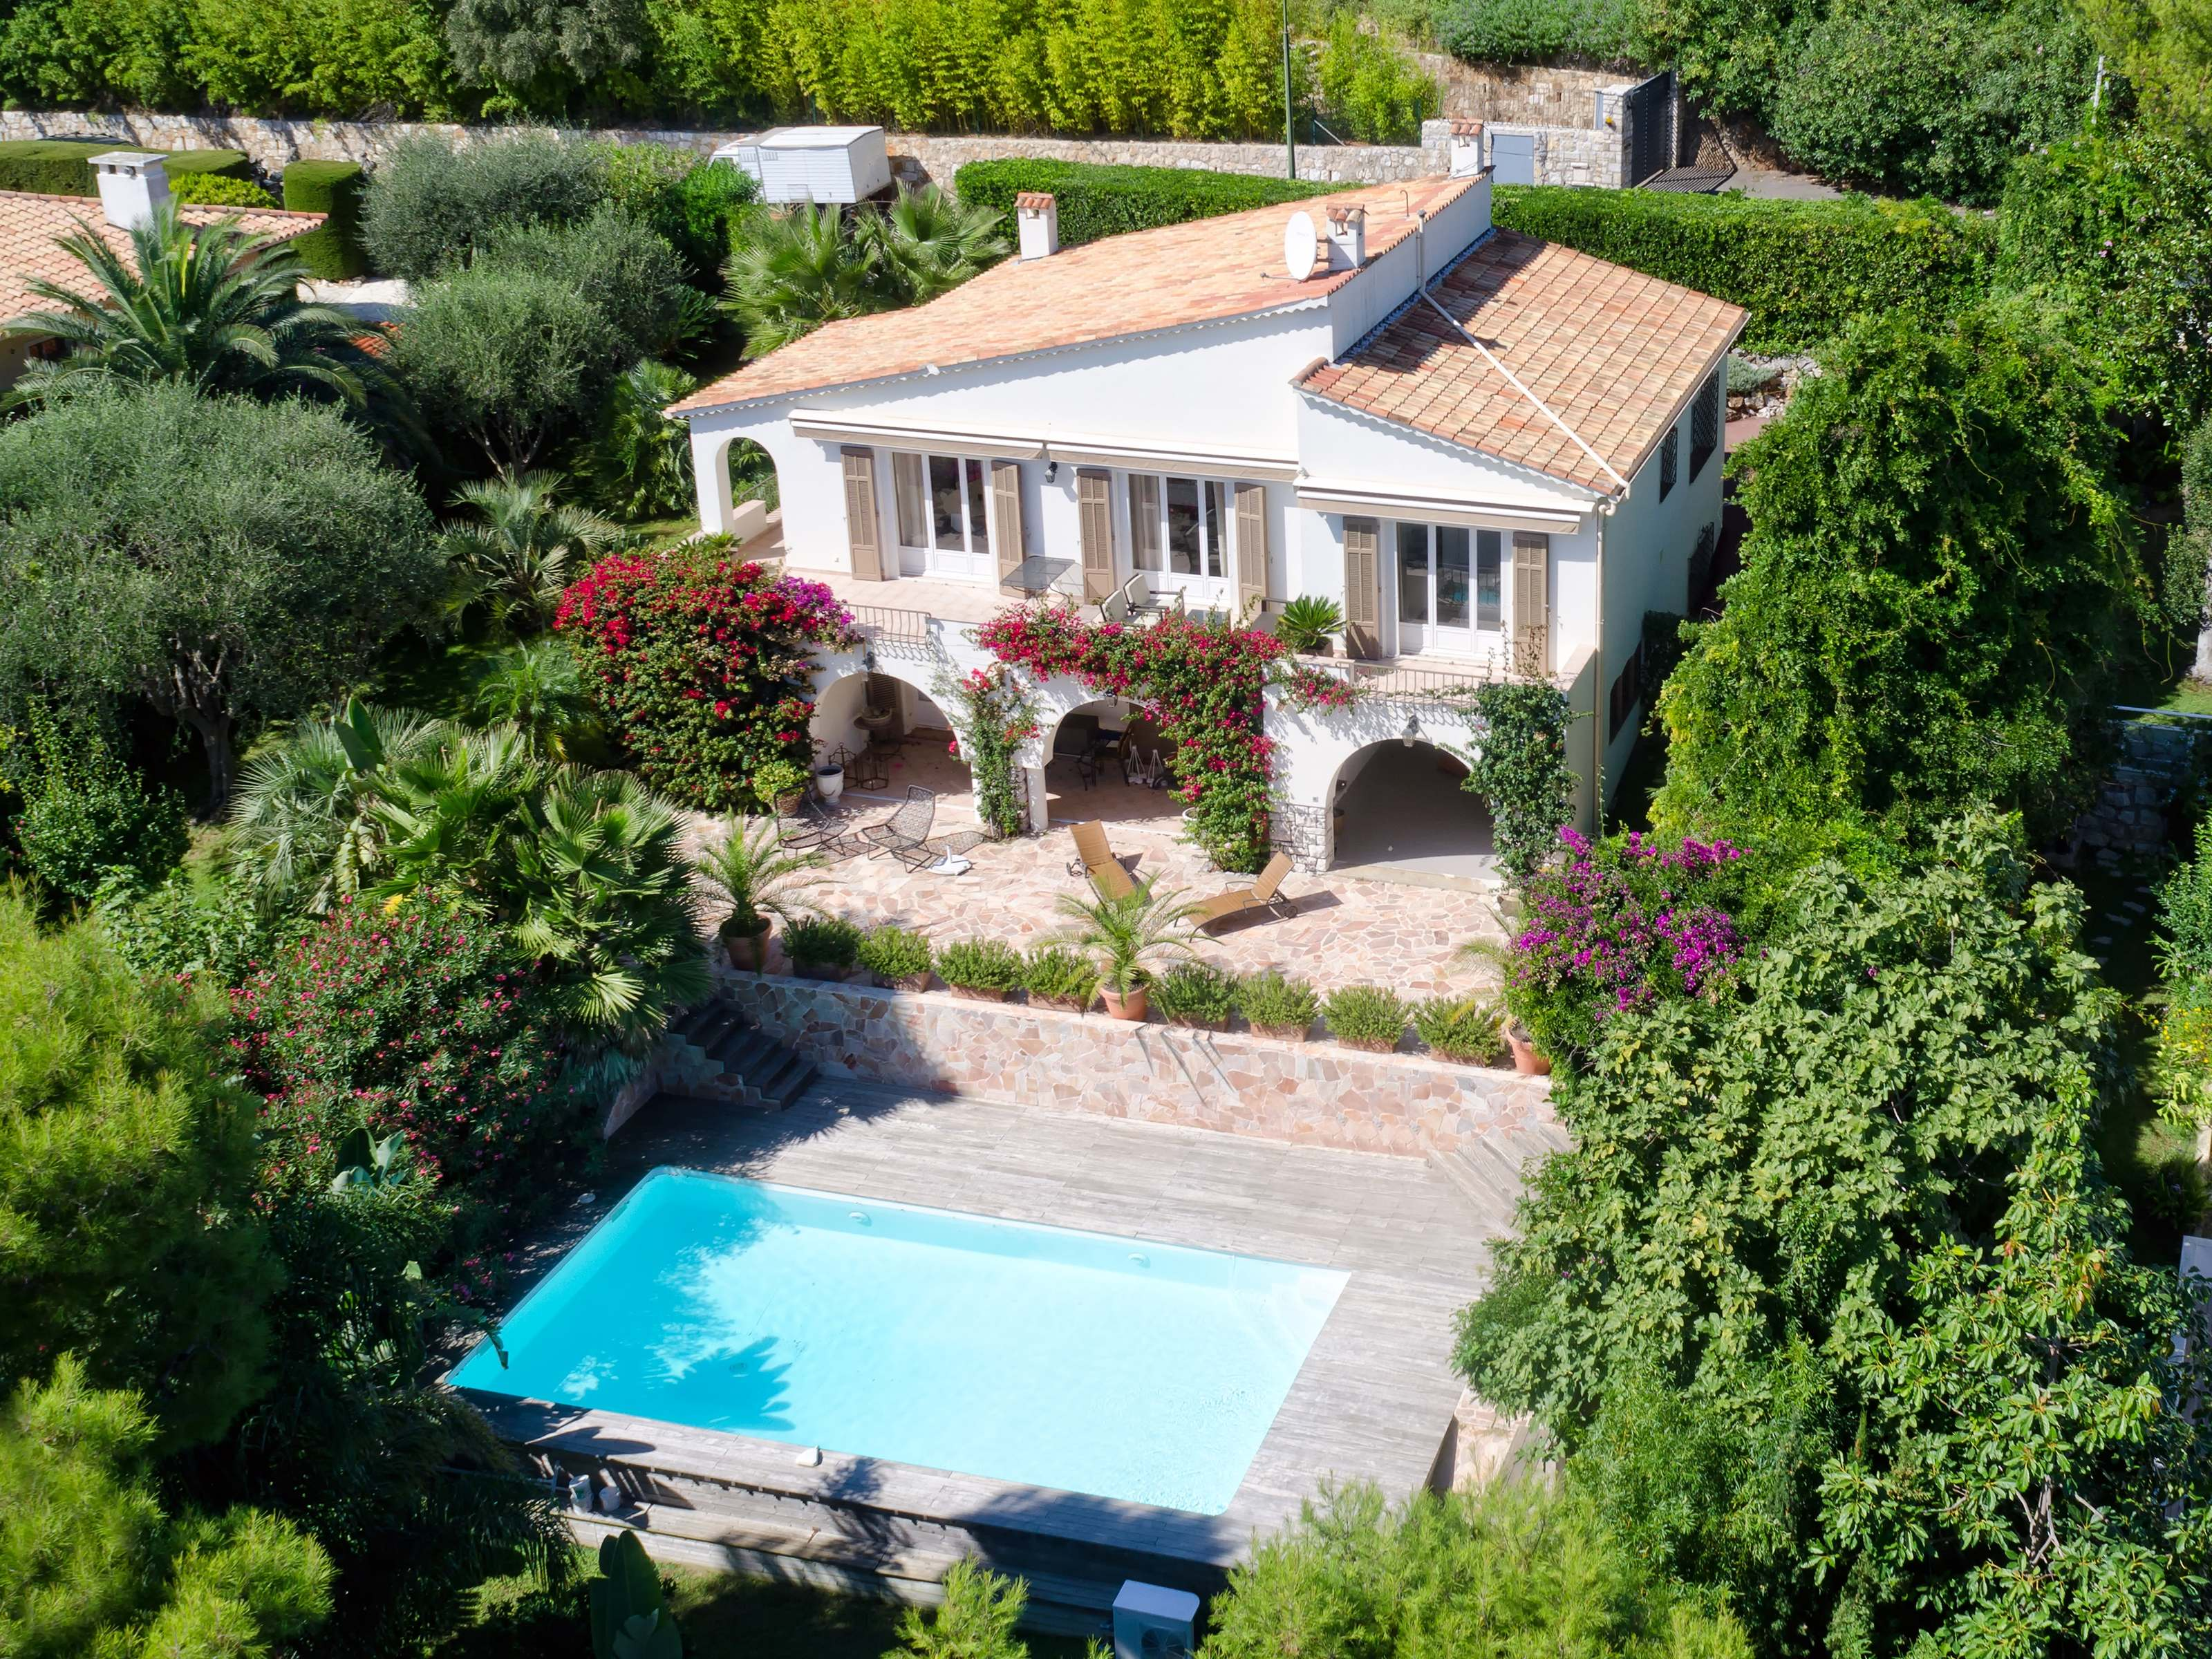 Single Family Home for Sale at Pretty villa on the Cap Ferrat - Sea view Saint Jean Cap Ferrat, Provence-Alpes-Cote D'Azur 06230 France